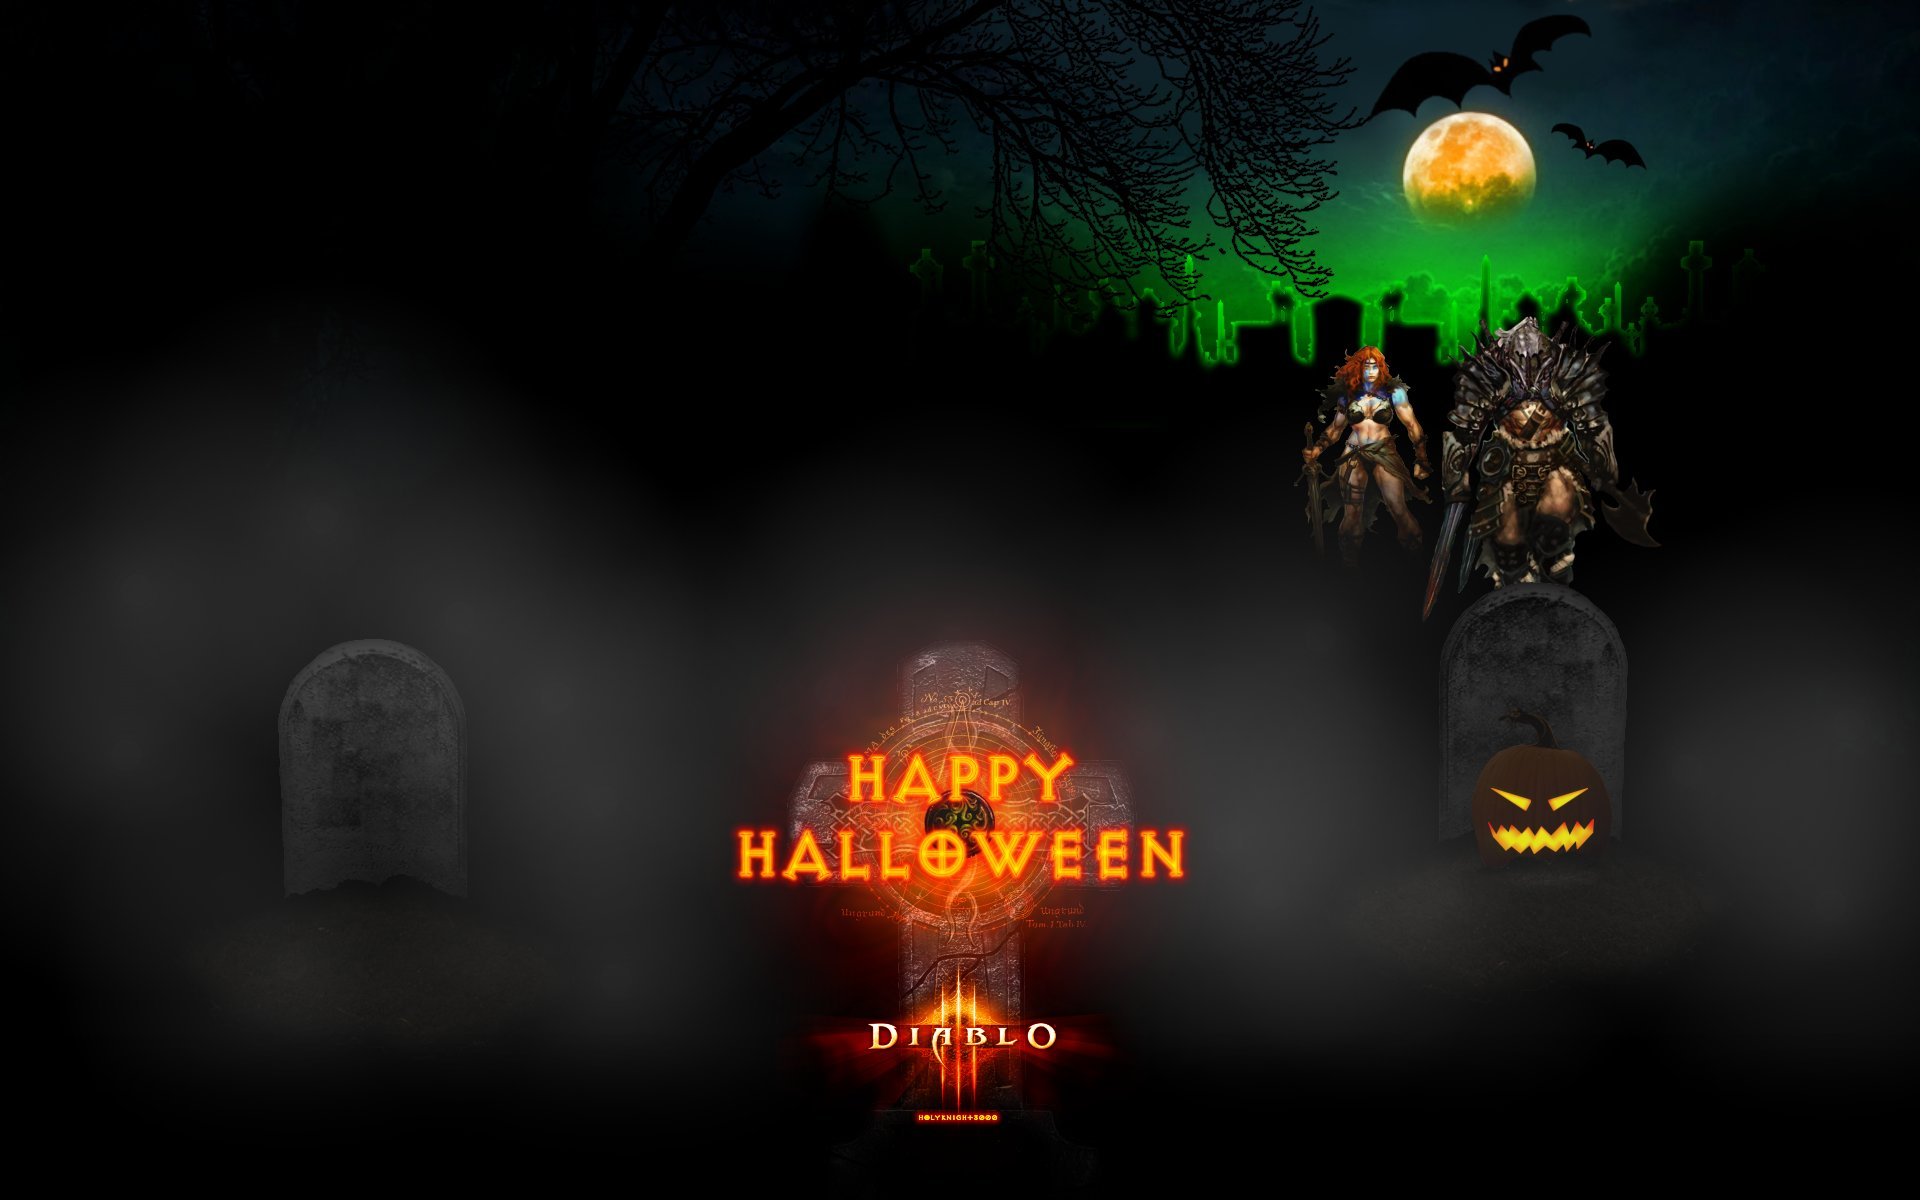 Download hd 1920x1200 Halloween PC wallpaper ID:402004 for free